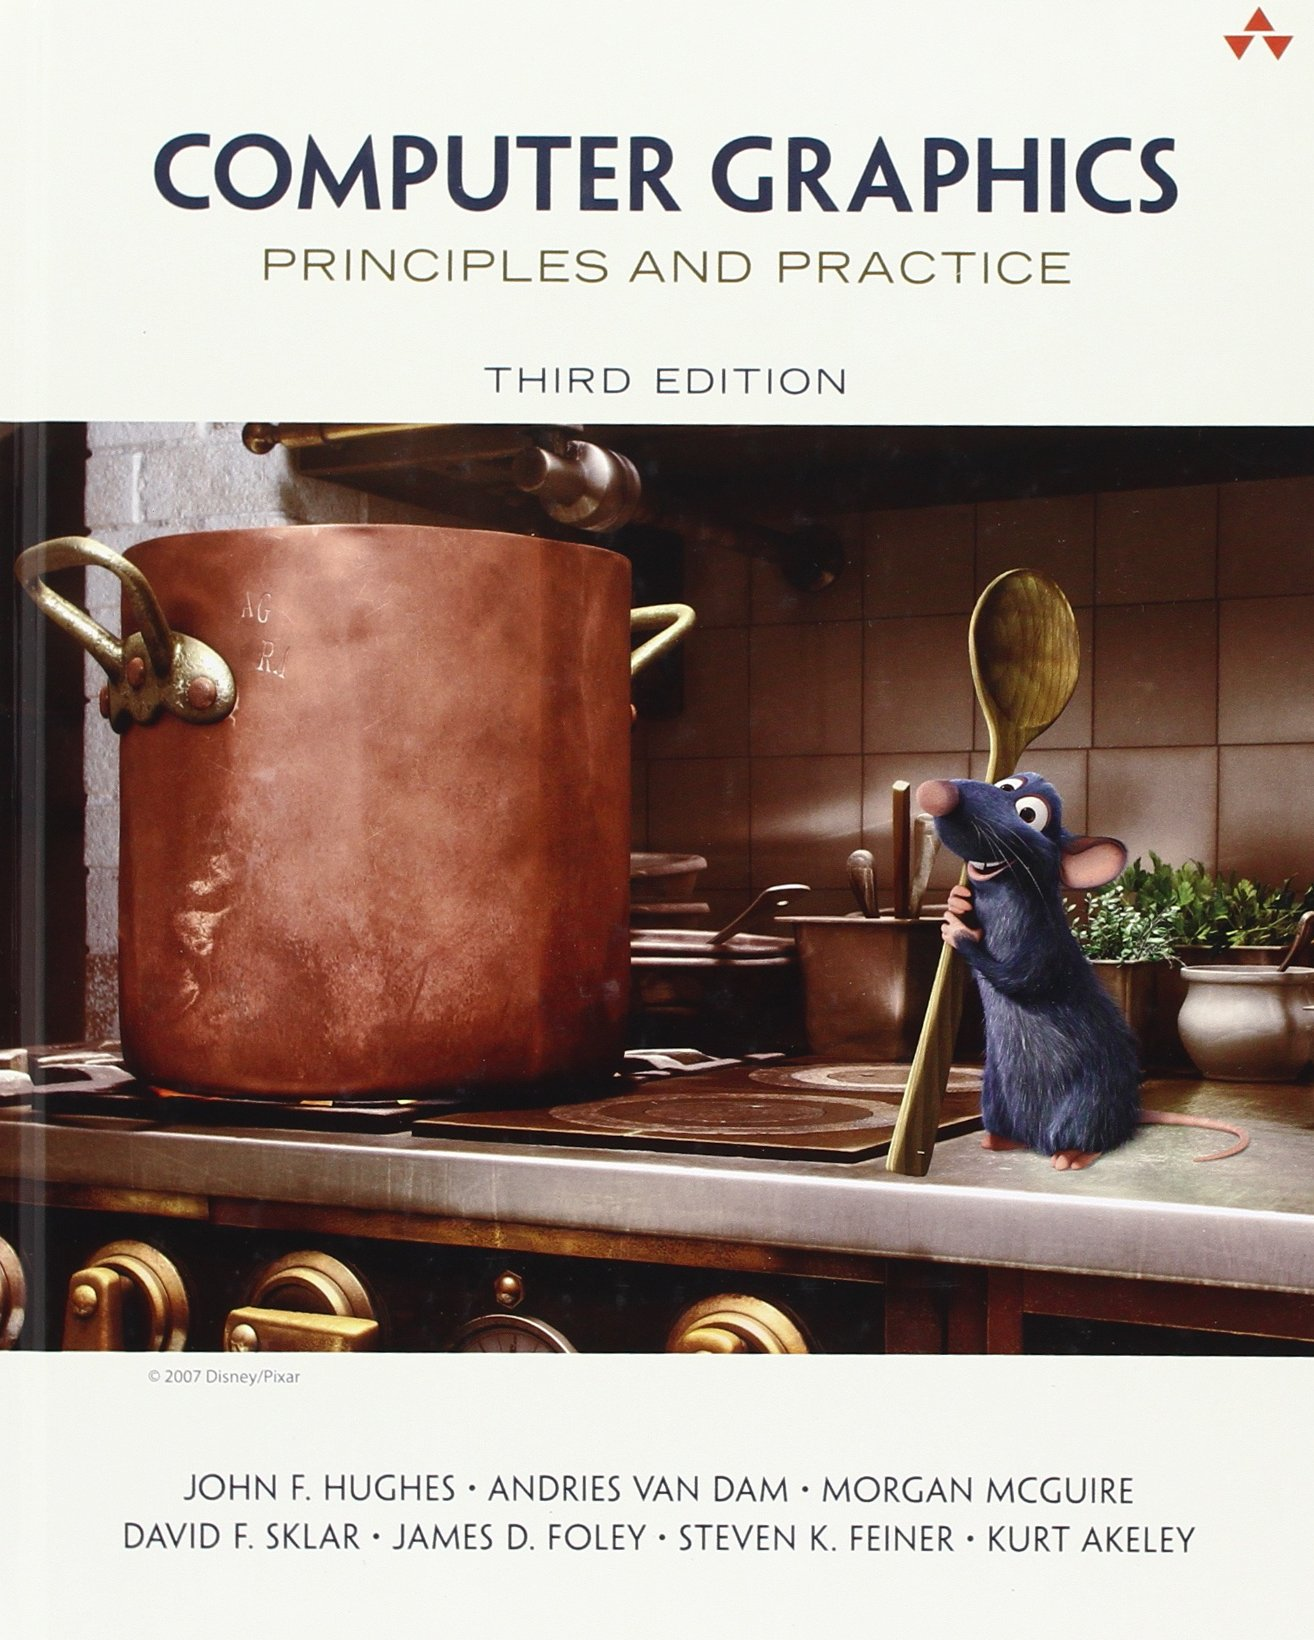 Computer Graphics: Principles and Practice: Principles and Practices:  Amazon.de: James D. Foley, Andries van Dam, Steven K. Feiner:  Fremdsprachige Bücher